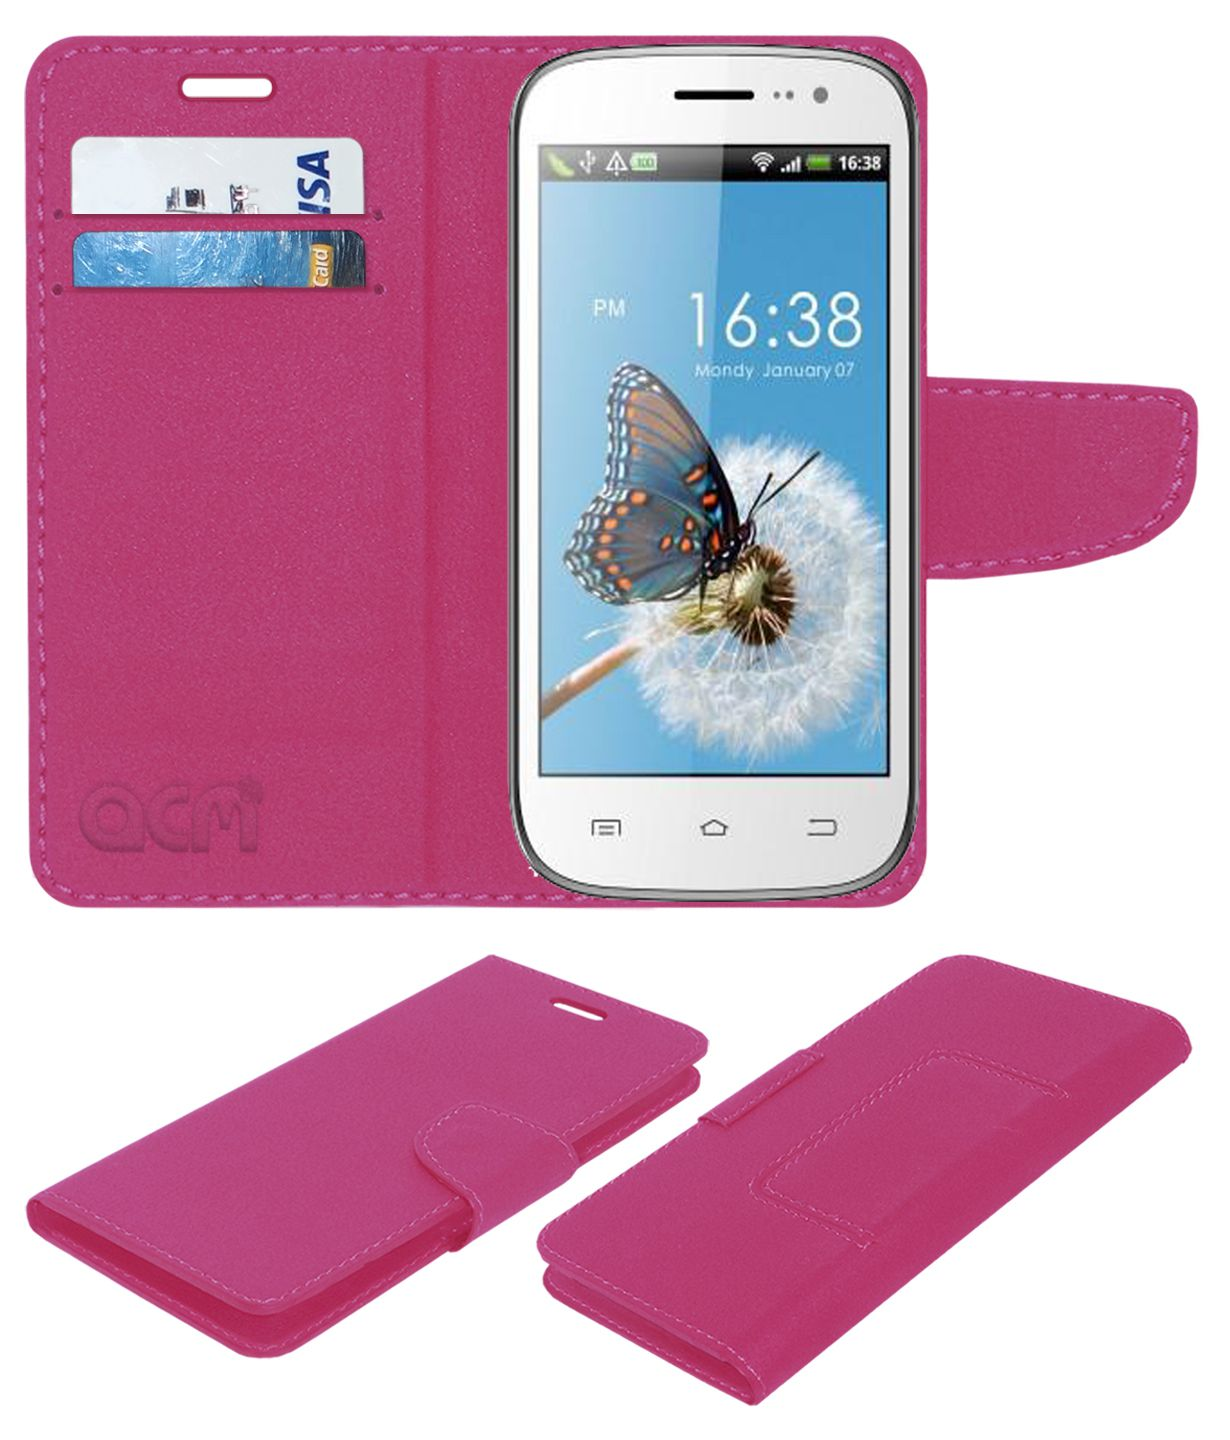 Celkon Signature One A107 Flip Cover by ACM - Pink